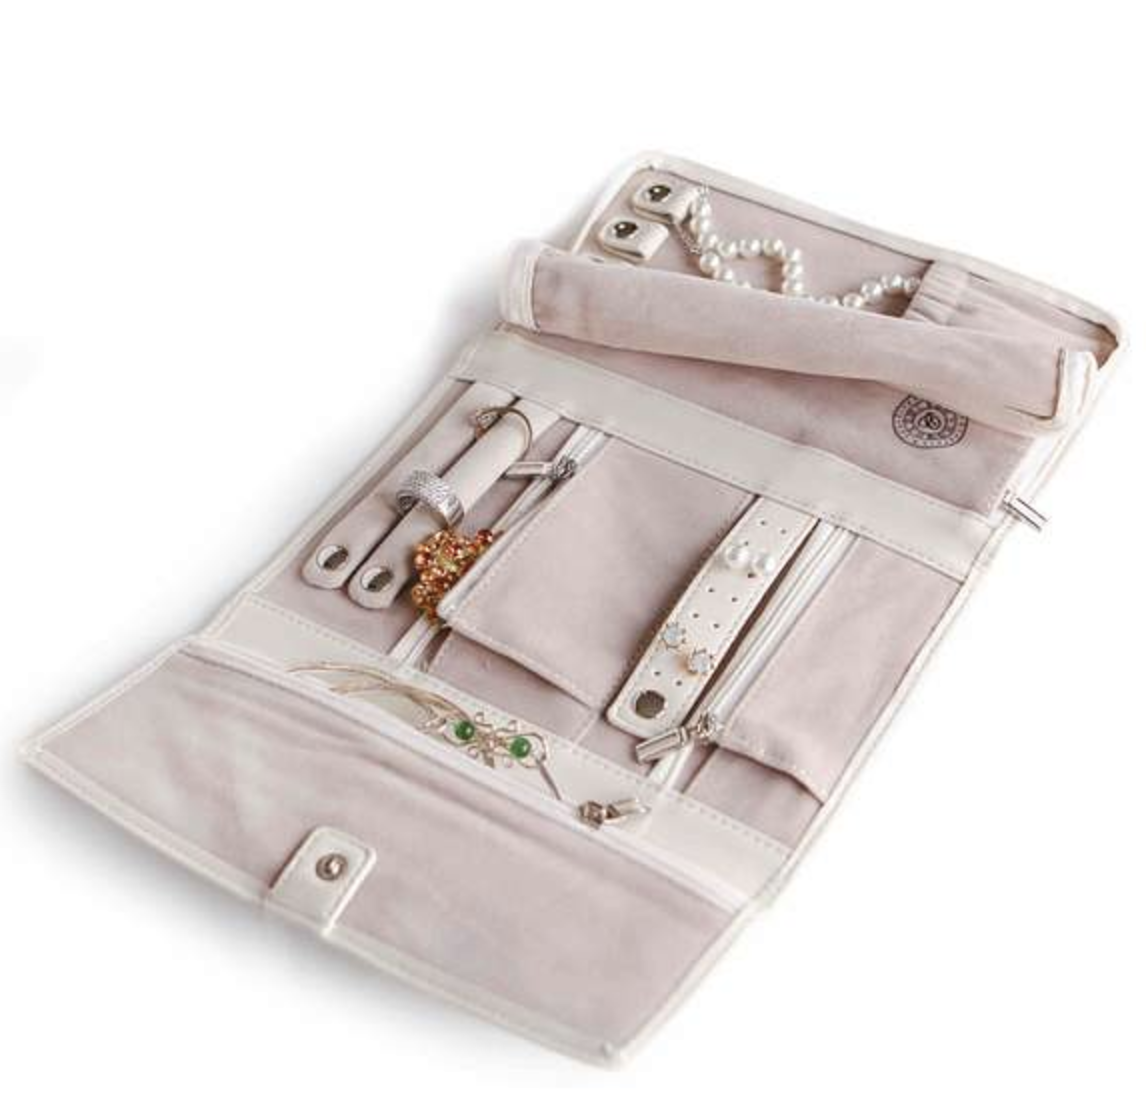 Vegan leather jewelry travel case from Case Elegance